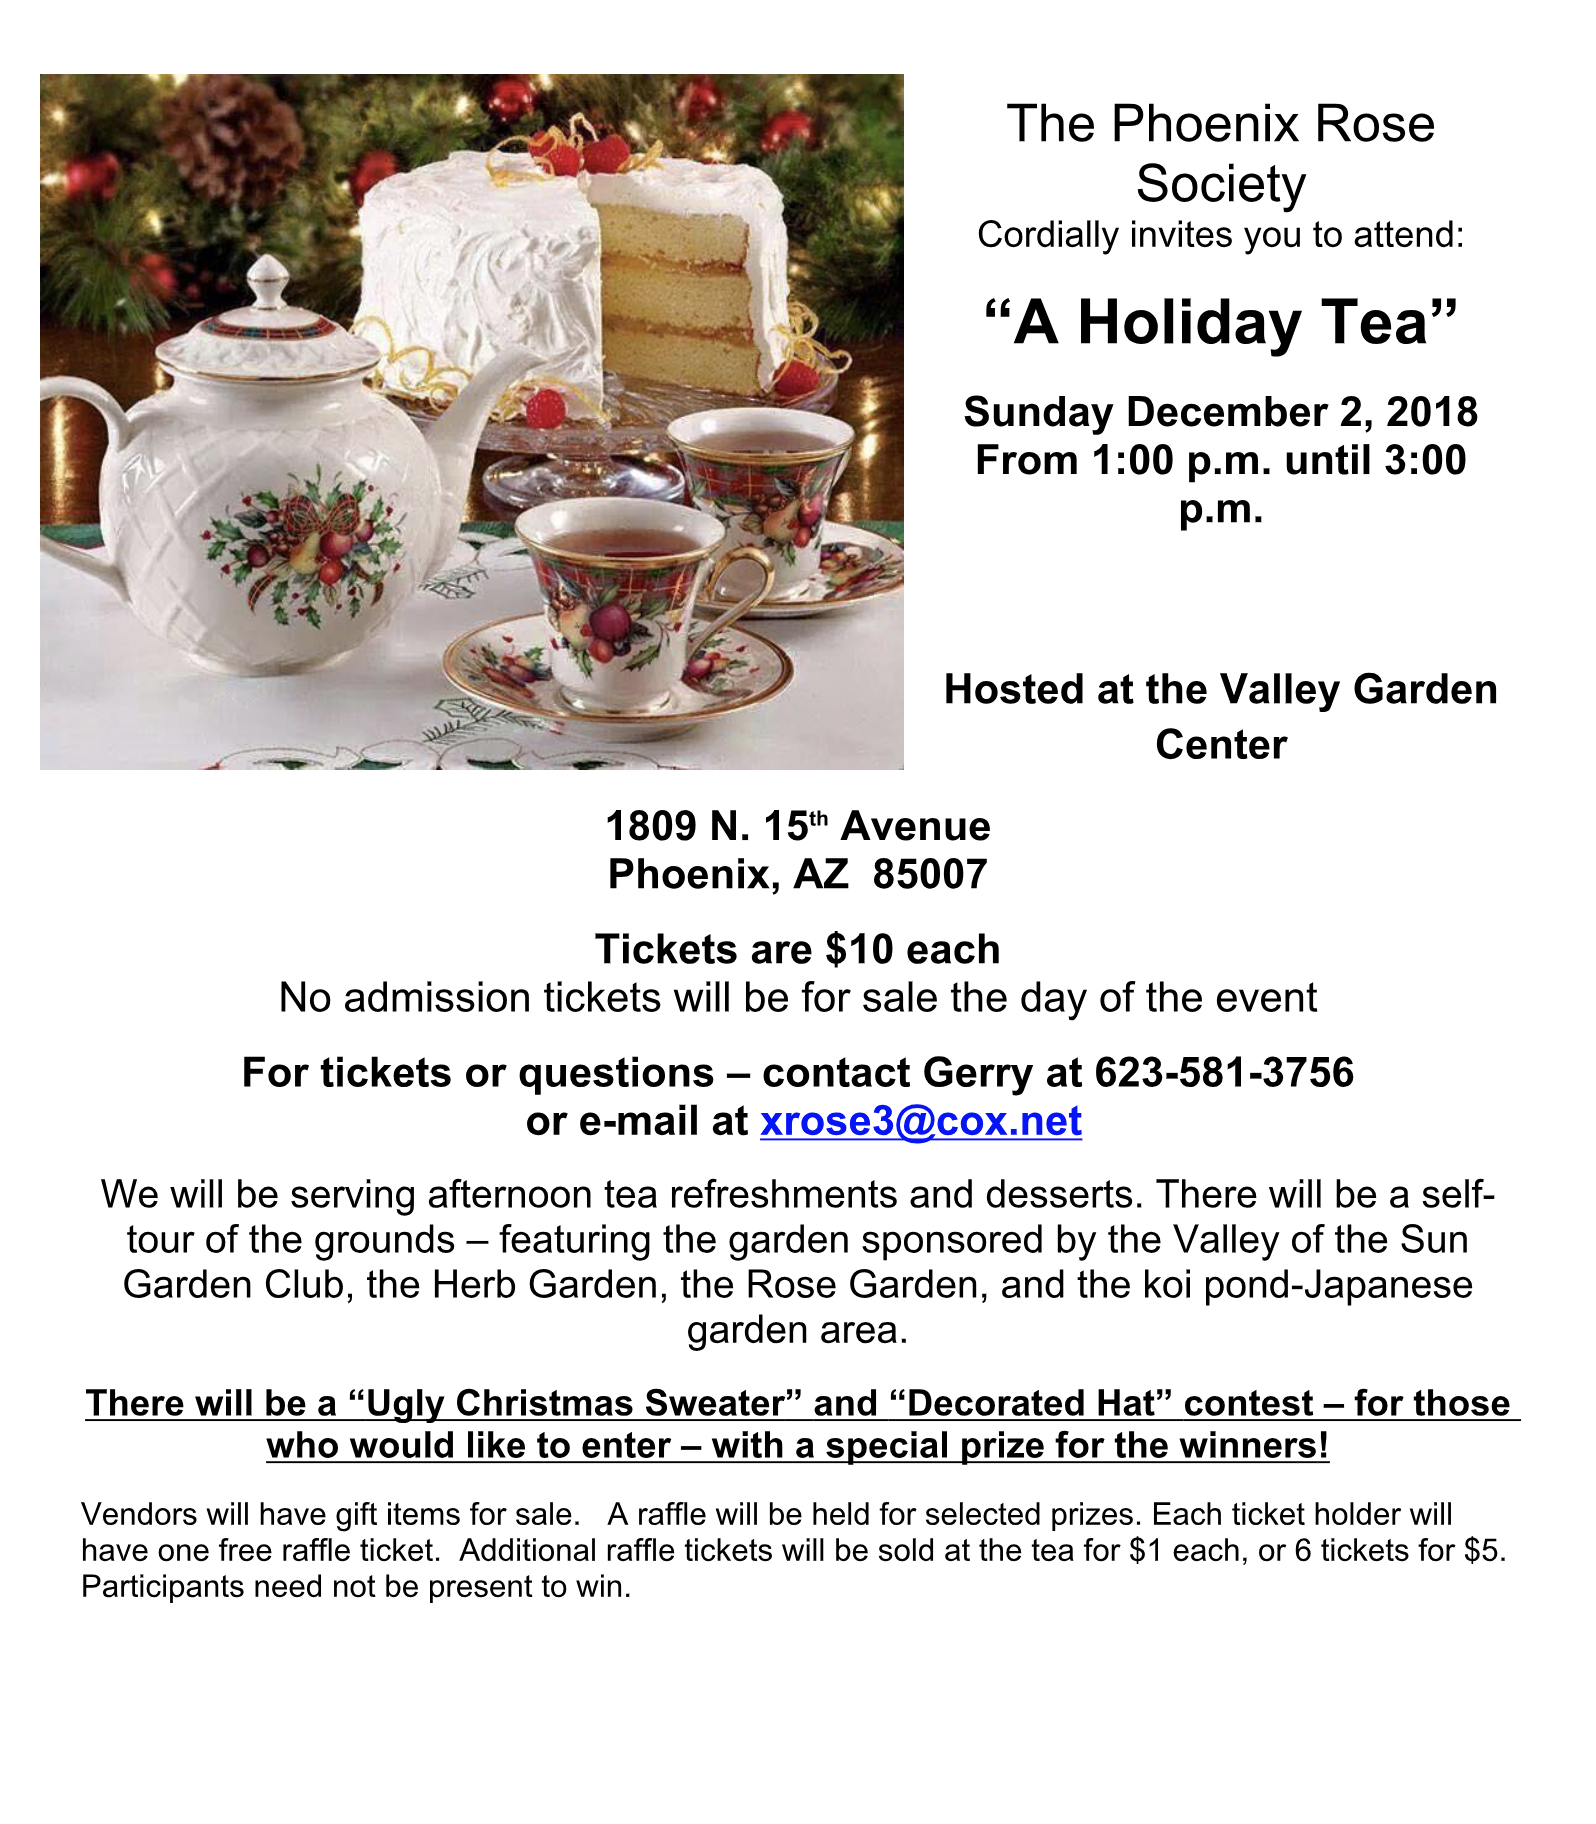 phoenix rose society holiday tea 2018.jpg